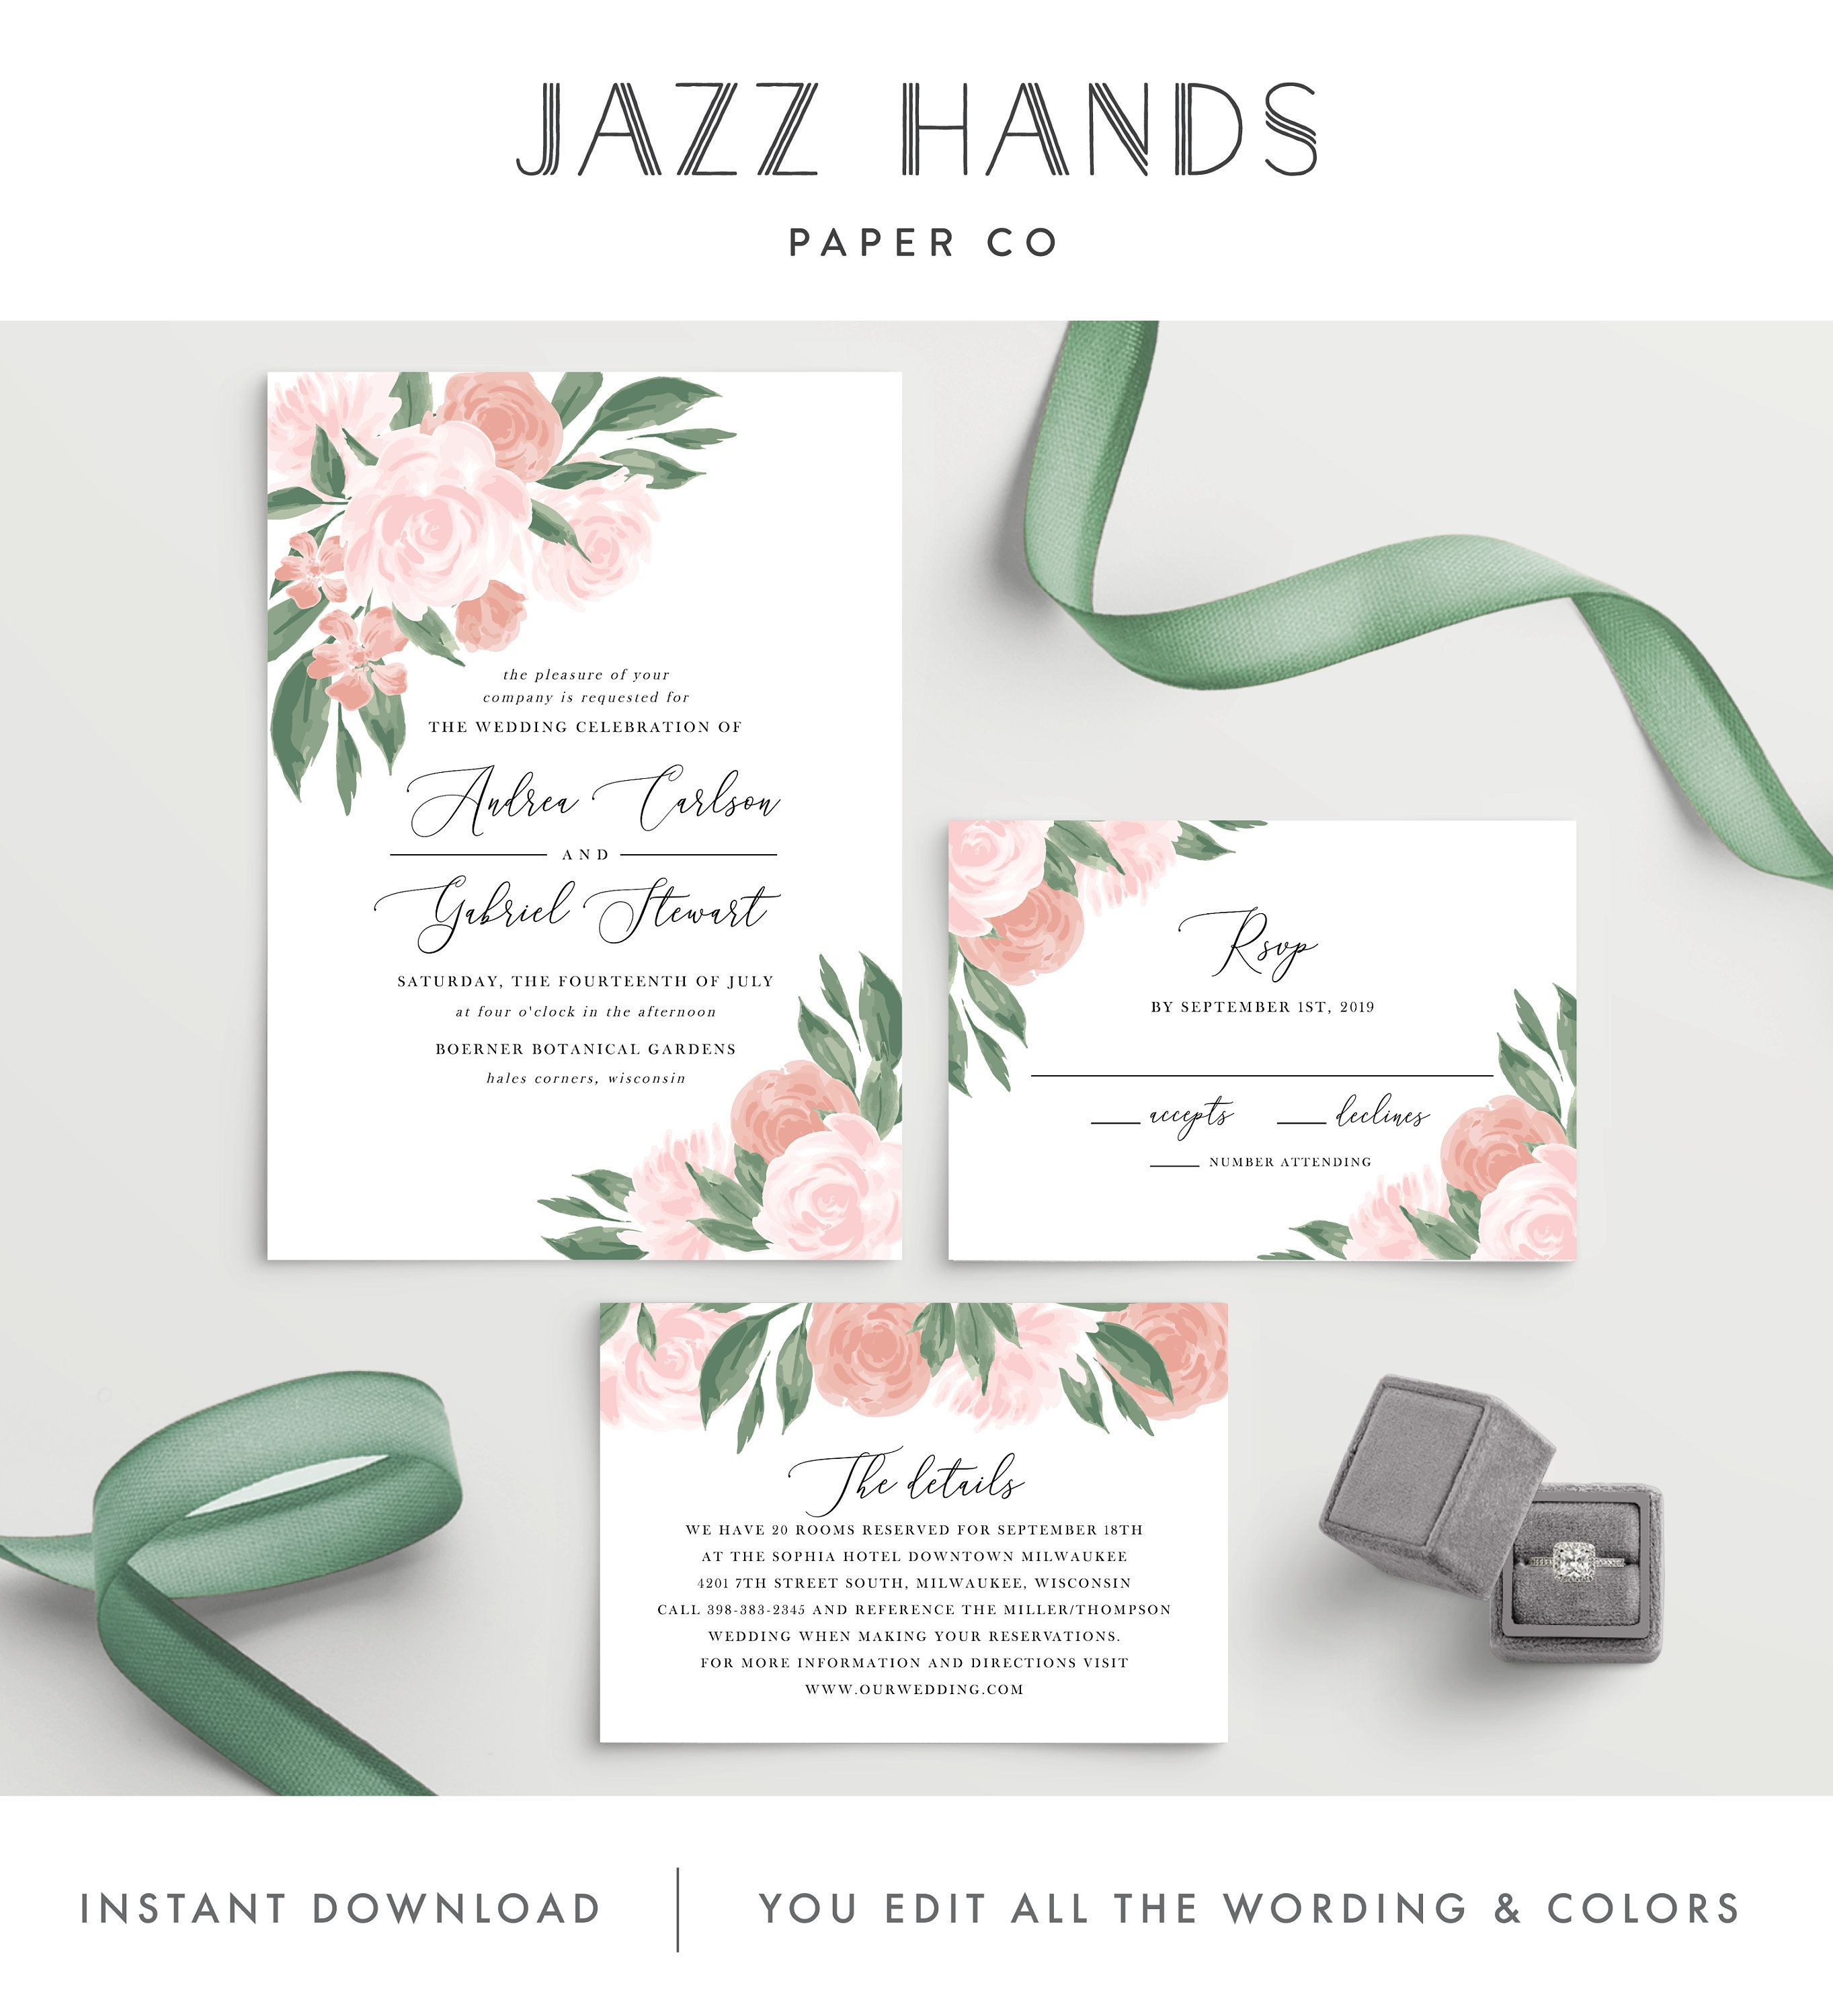 Wedding Invitation Template Colors And Text Fully Editable Etsy Wedding Invitation Templates Instant Download Wedding Invitations Wedding Invitations